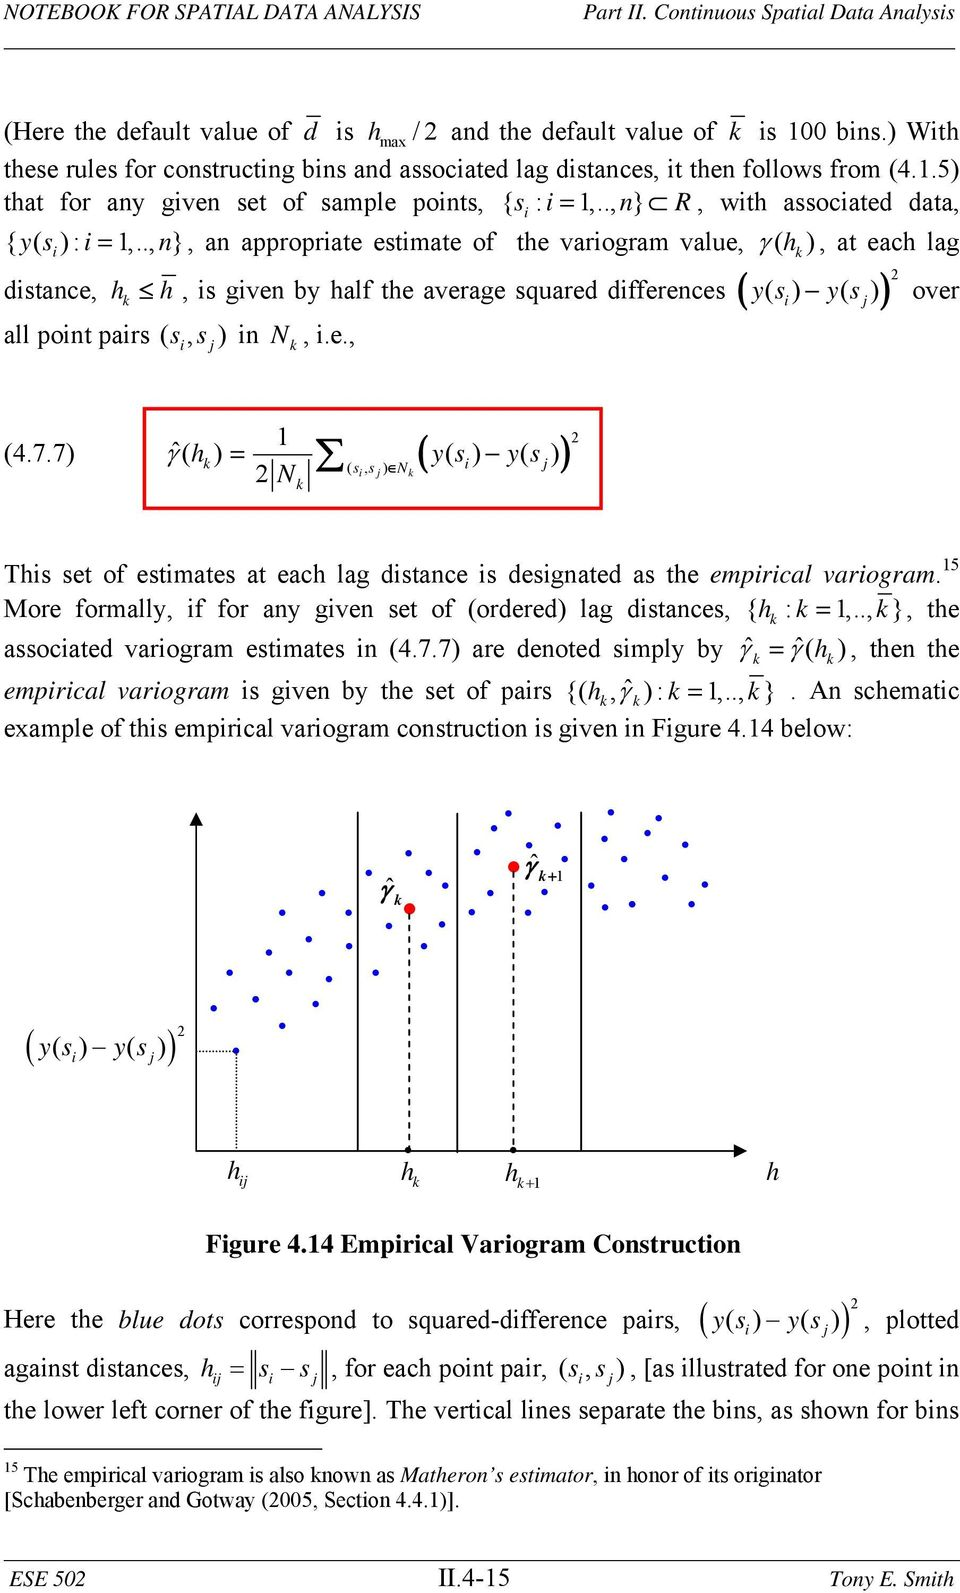 ., n}, an appropriate estimate of te variogram value, ( ), at eac lag i distance, all point pairs ( si, s j) in N, i.e.,, is given by alf te average squared differences ys ys ( ) ( ) over i j (4.7.